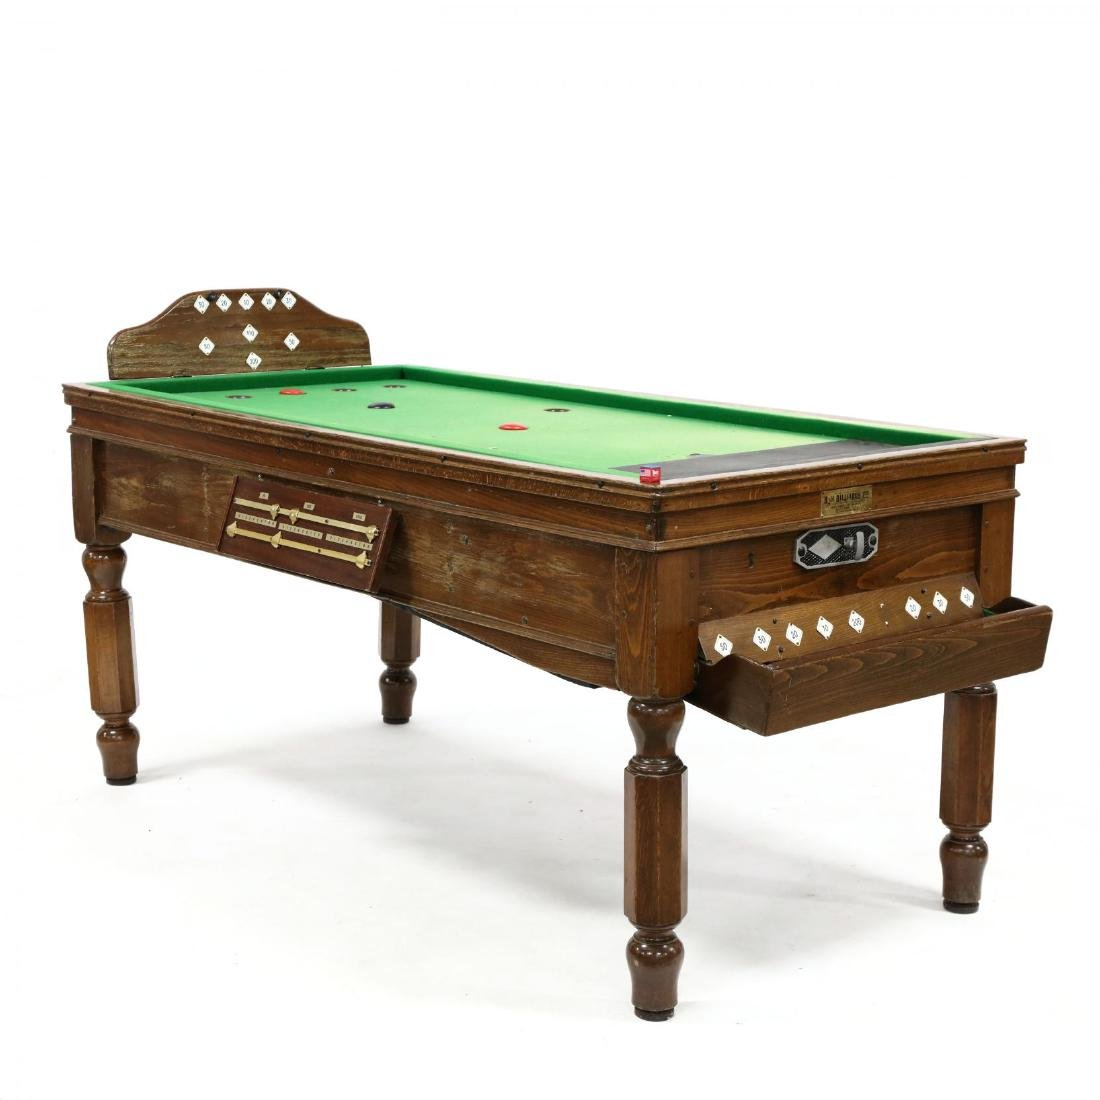 Antique English Bar Billiards Table and Accessories